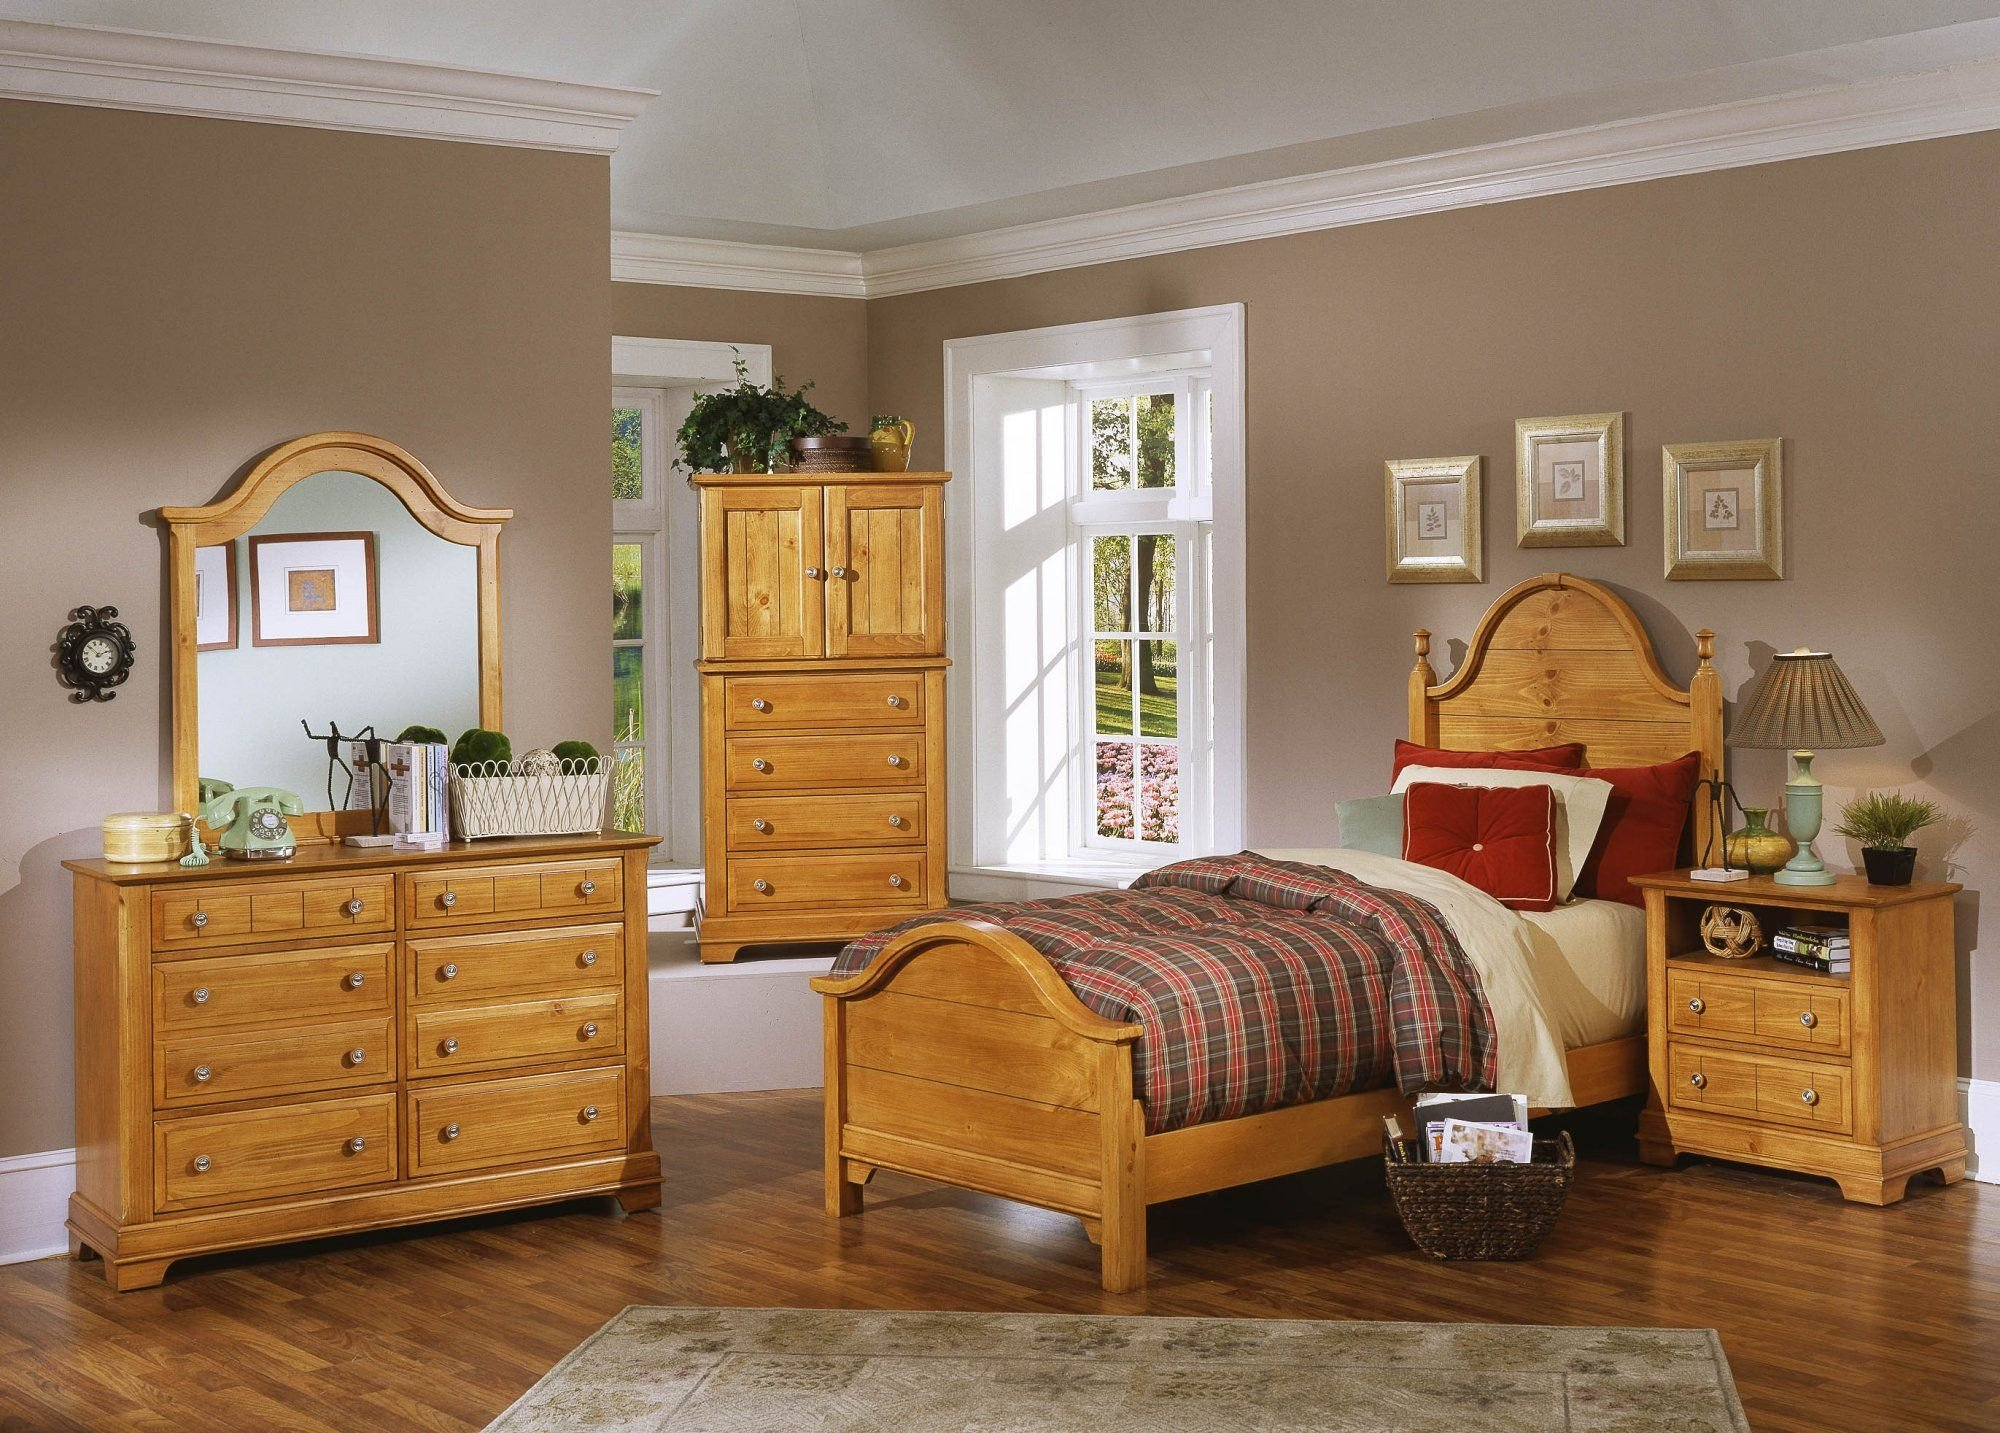 Bedroom Furniture Set Cheap Inspirational 30 Inspired Picture Of Wooden Bedroom Furniture Wooden